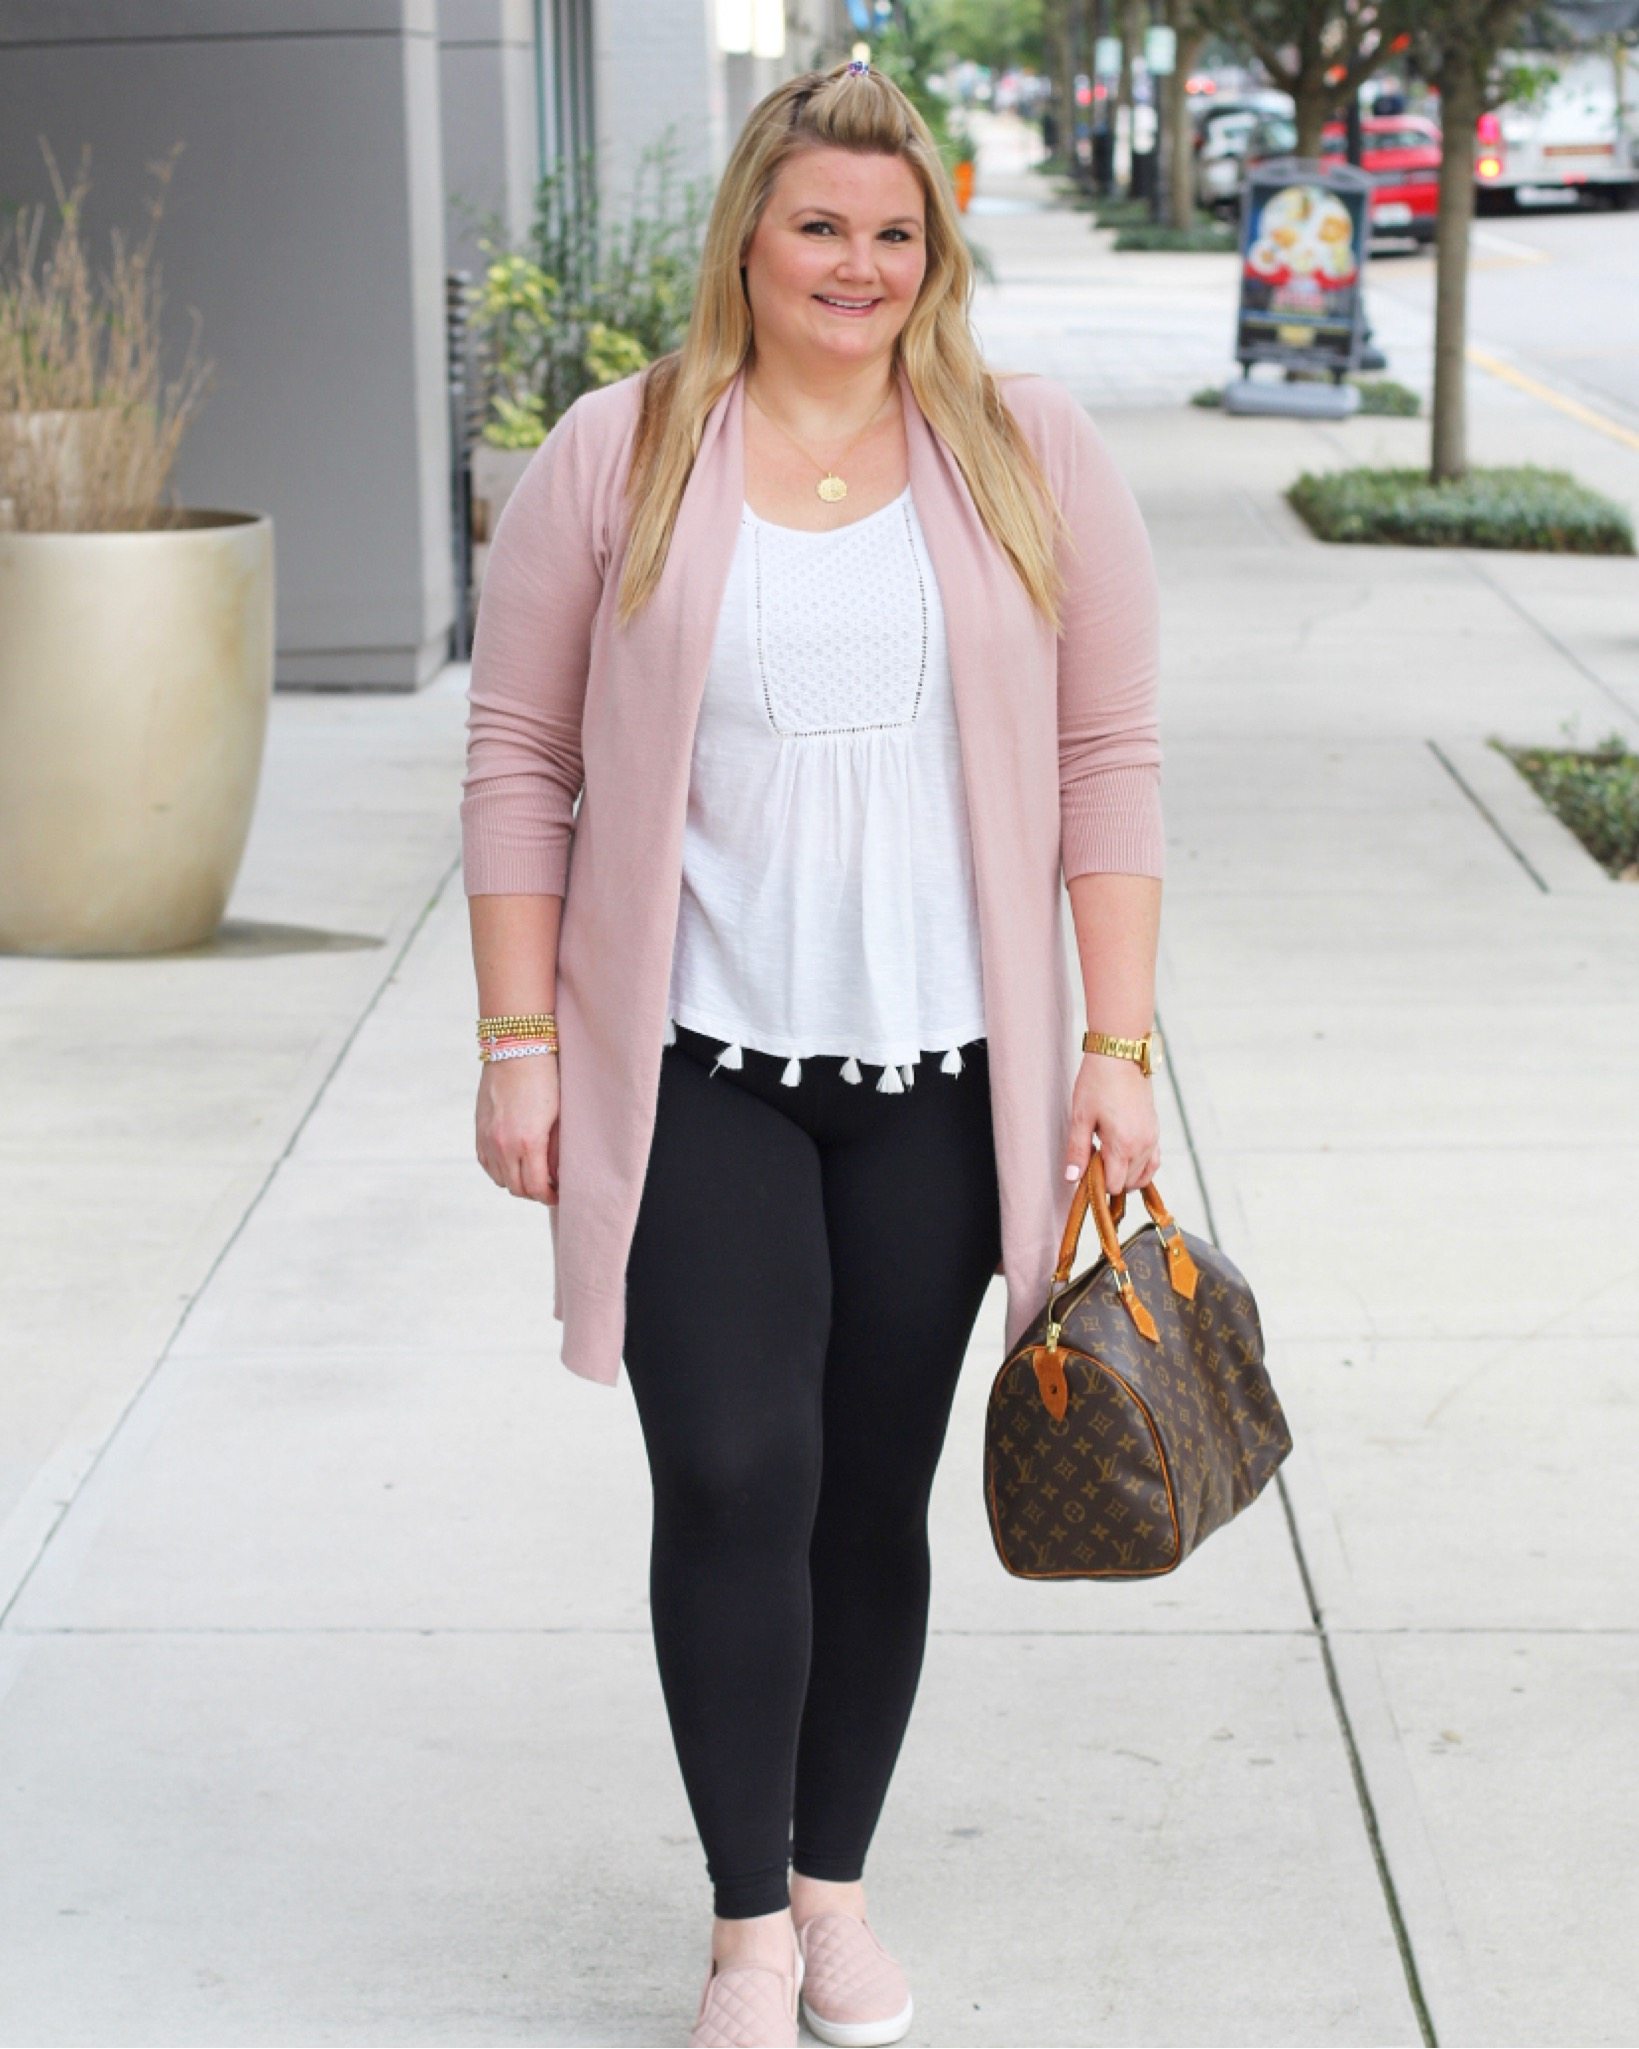 Nordstrom Sale Cardigan and Leggings fabulously overdressed